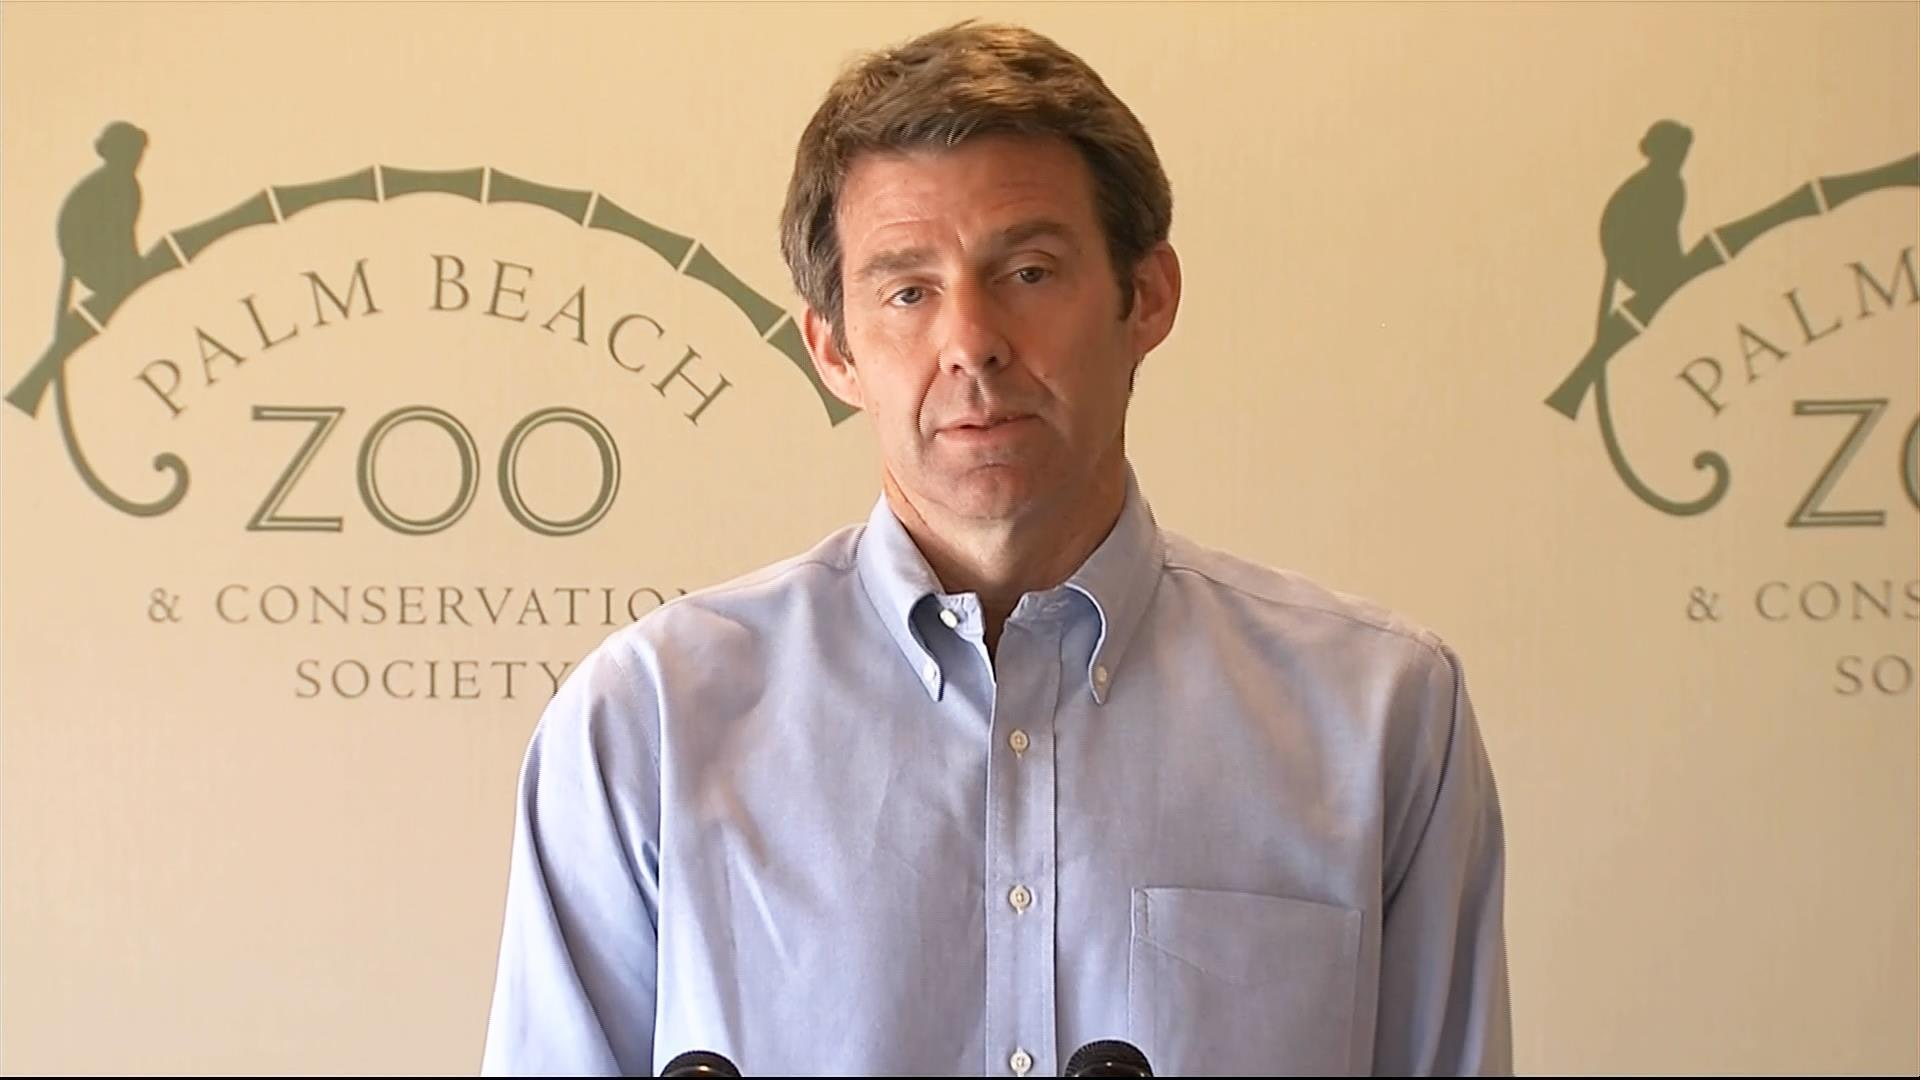 Palm Beach Zoo Tiger Attack: CEO Gives Detailed Account of Zoo Keeper's Death